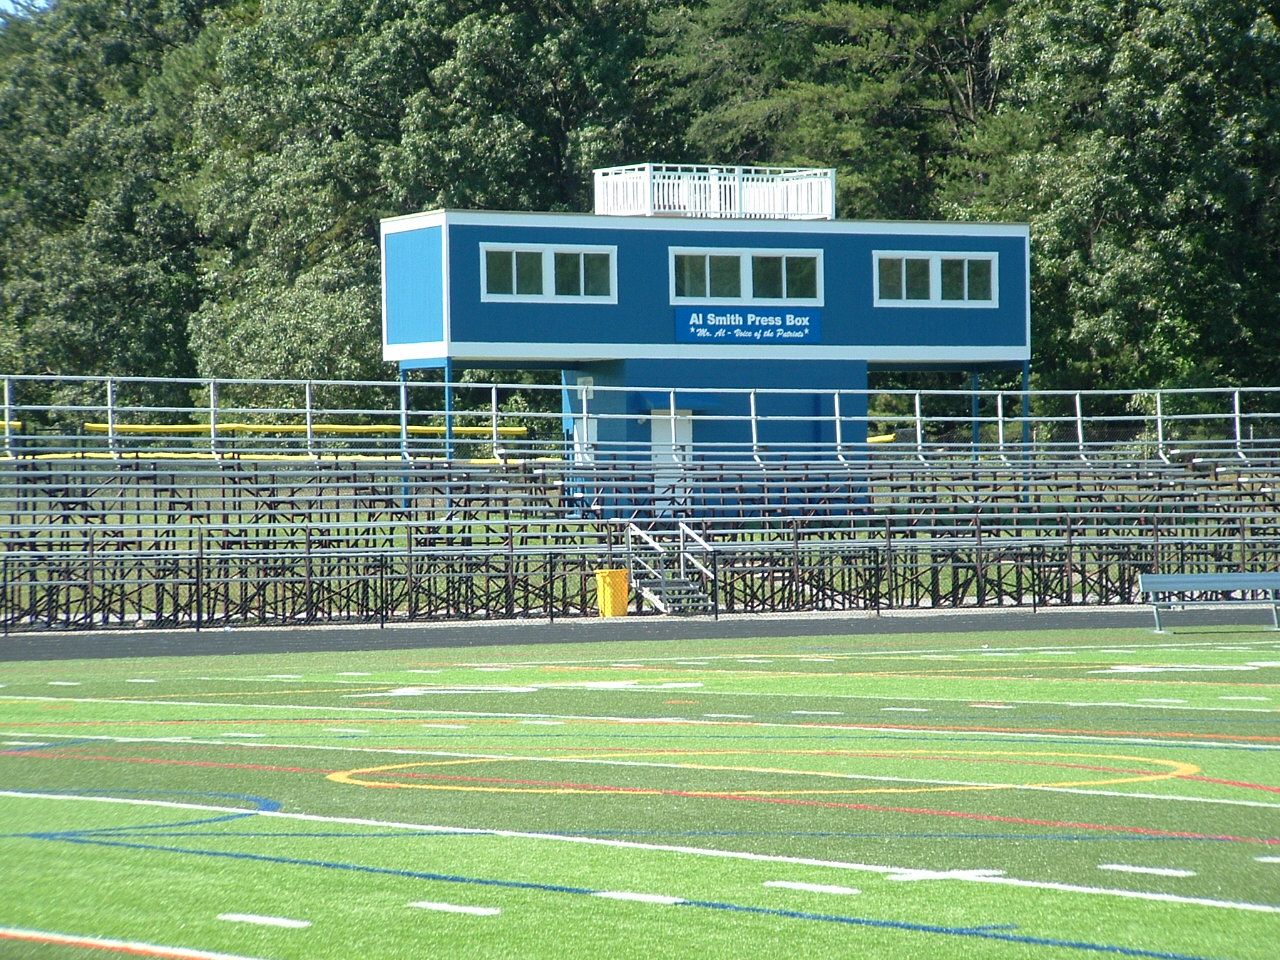 OMHS Press Box - After